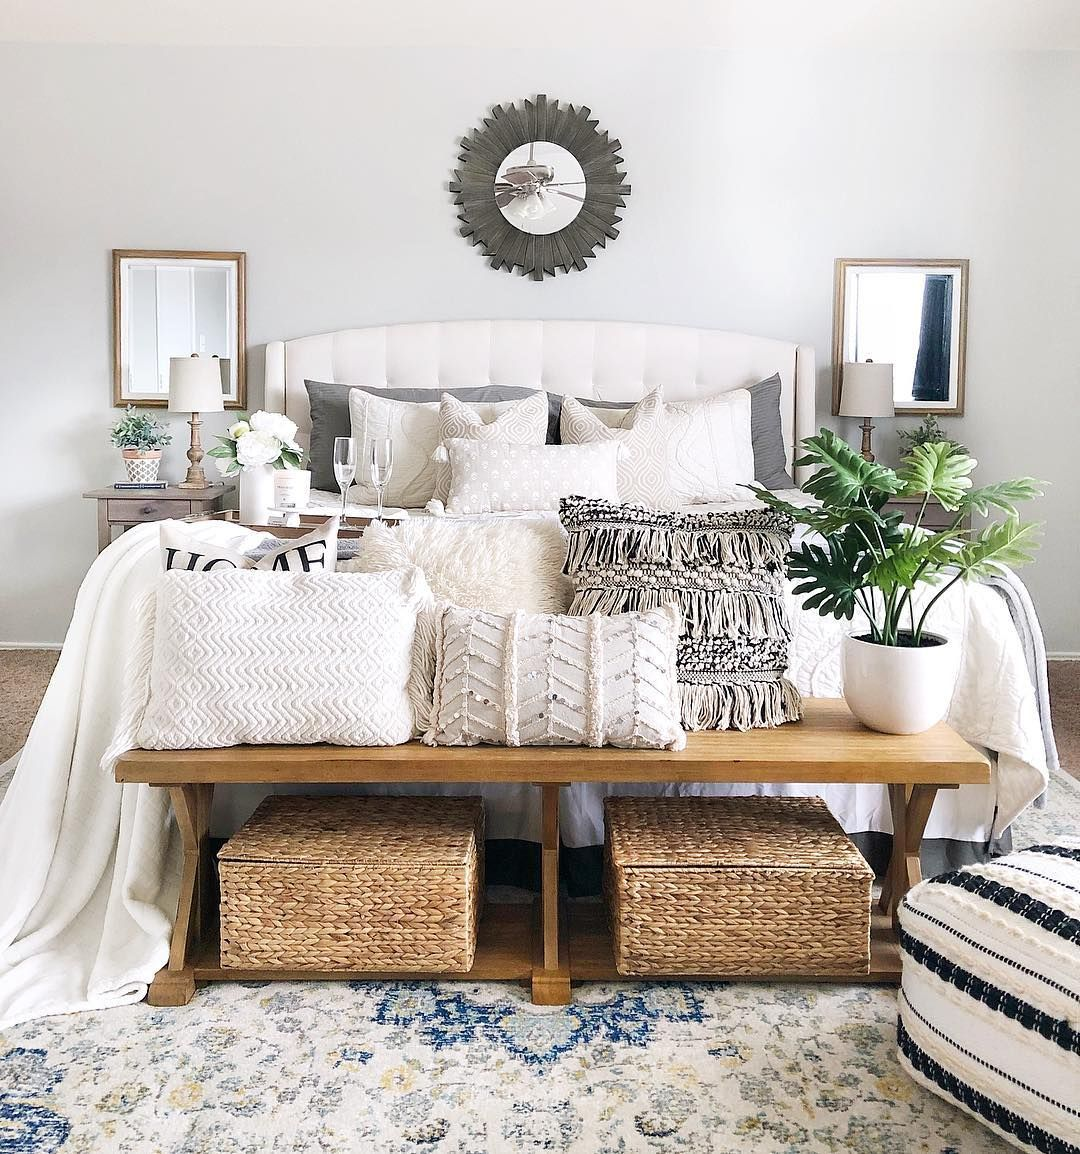 Stephanie On Instagram It S Been A Rough Week For Me And The Alarm Clock I Probably Need To Ma Boho Master Bedroom Home Decor Bedroom Boho Farmhouse Bedroom